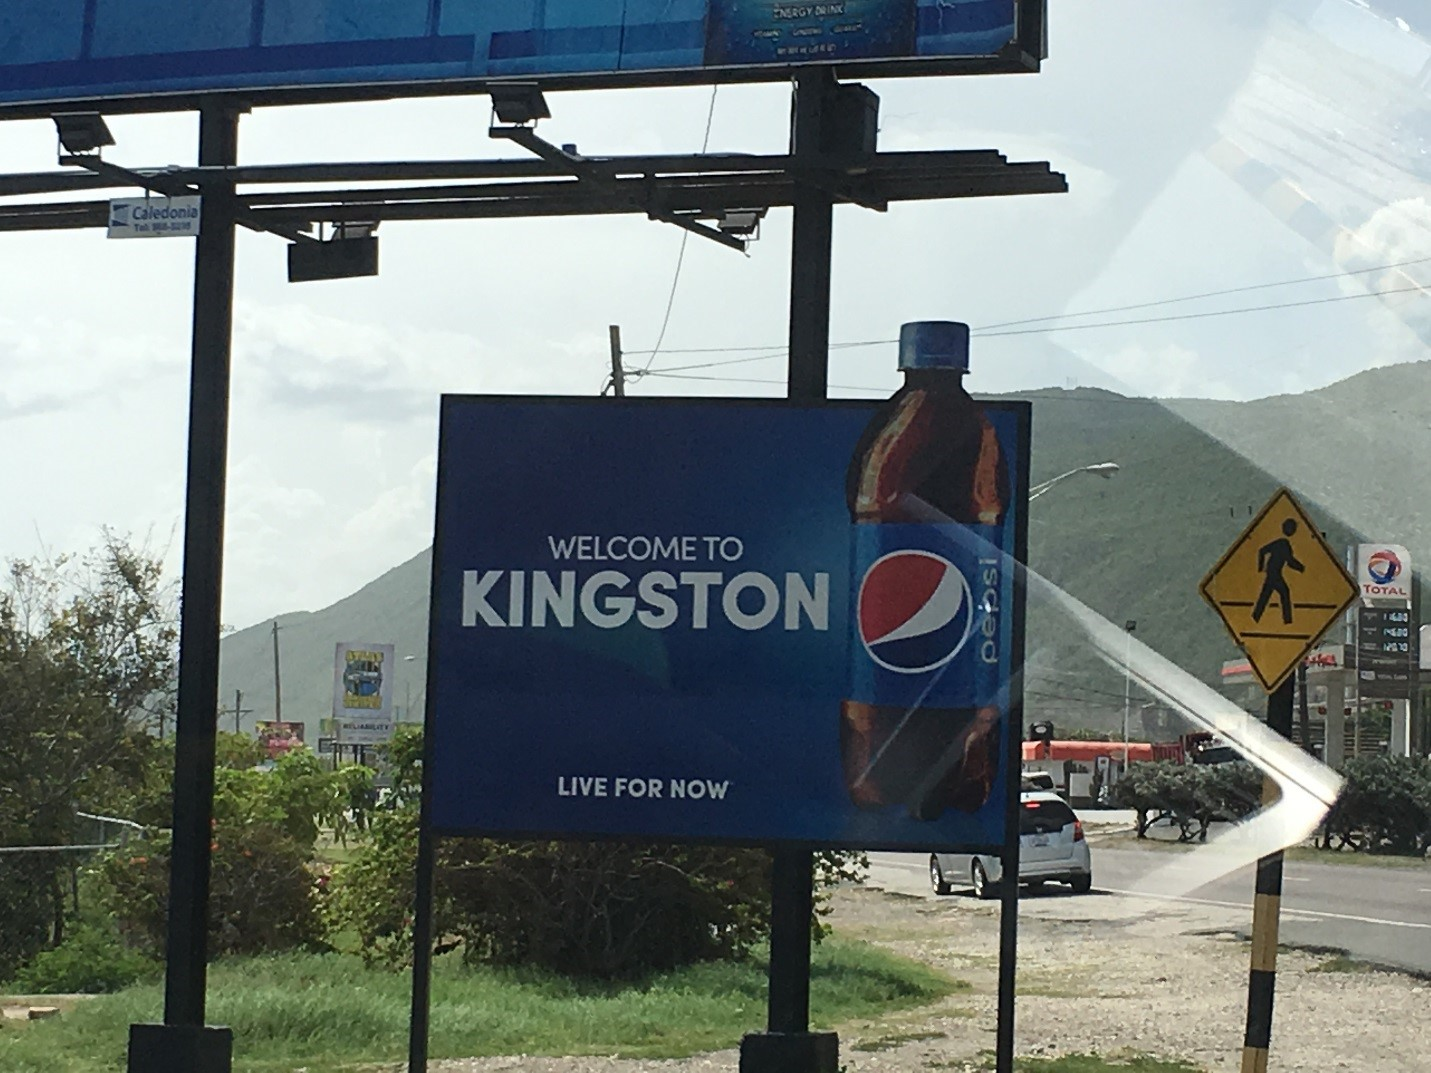 Welcome to Kingston Pepsi sign